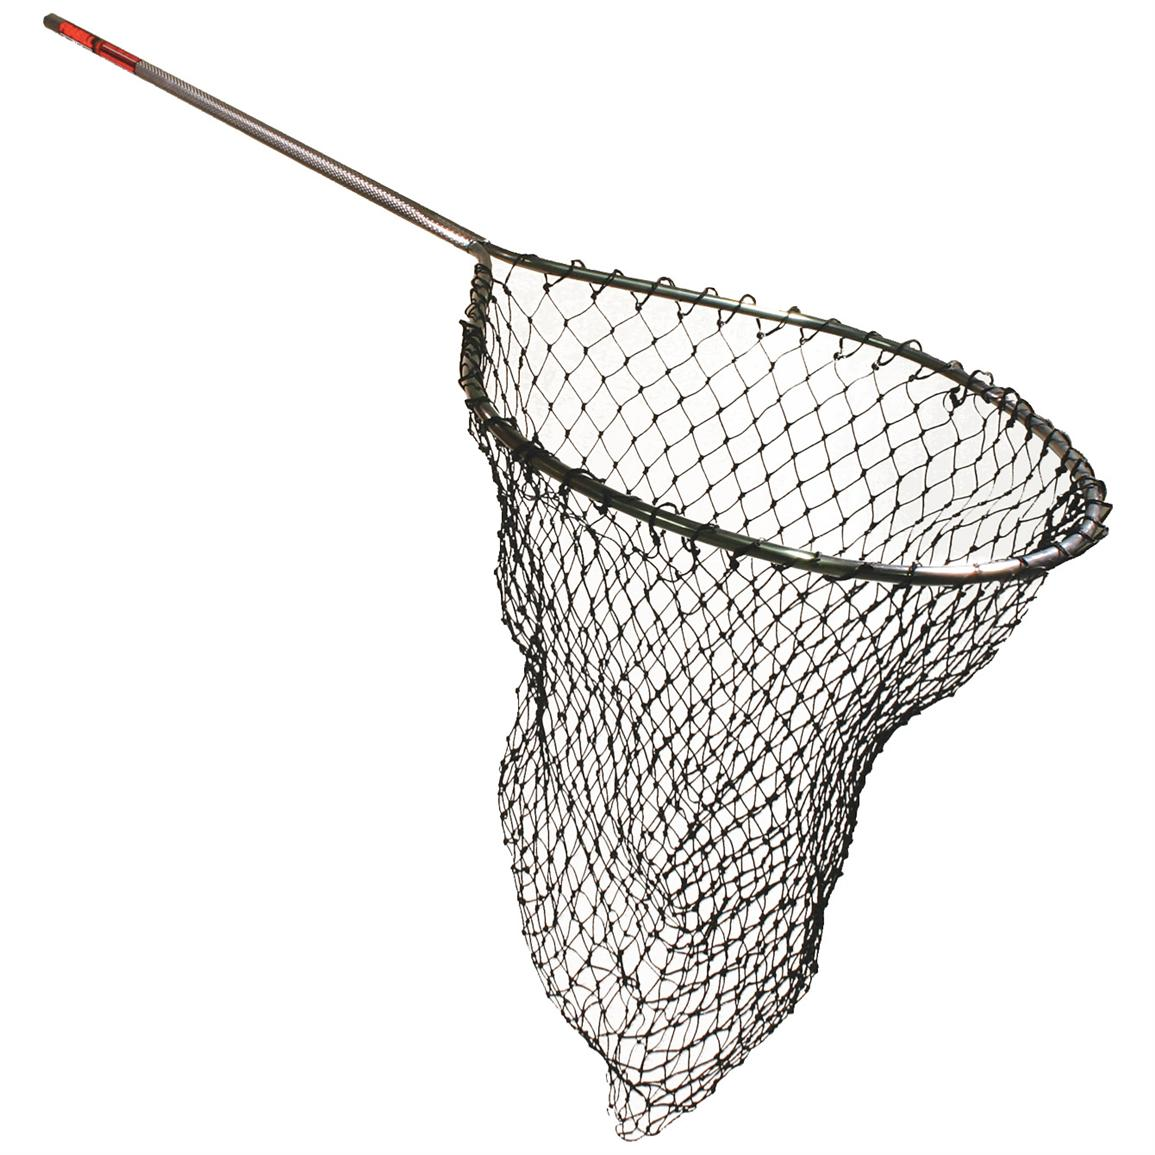 Fish Net clipart fishing net Frabill® Download Clipart Free Free